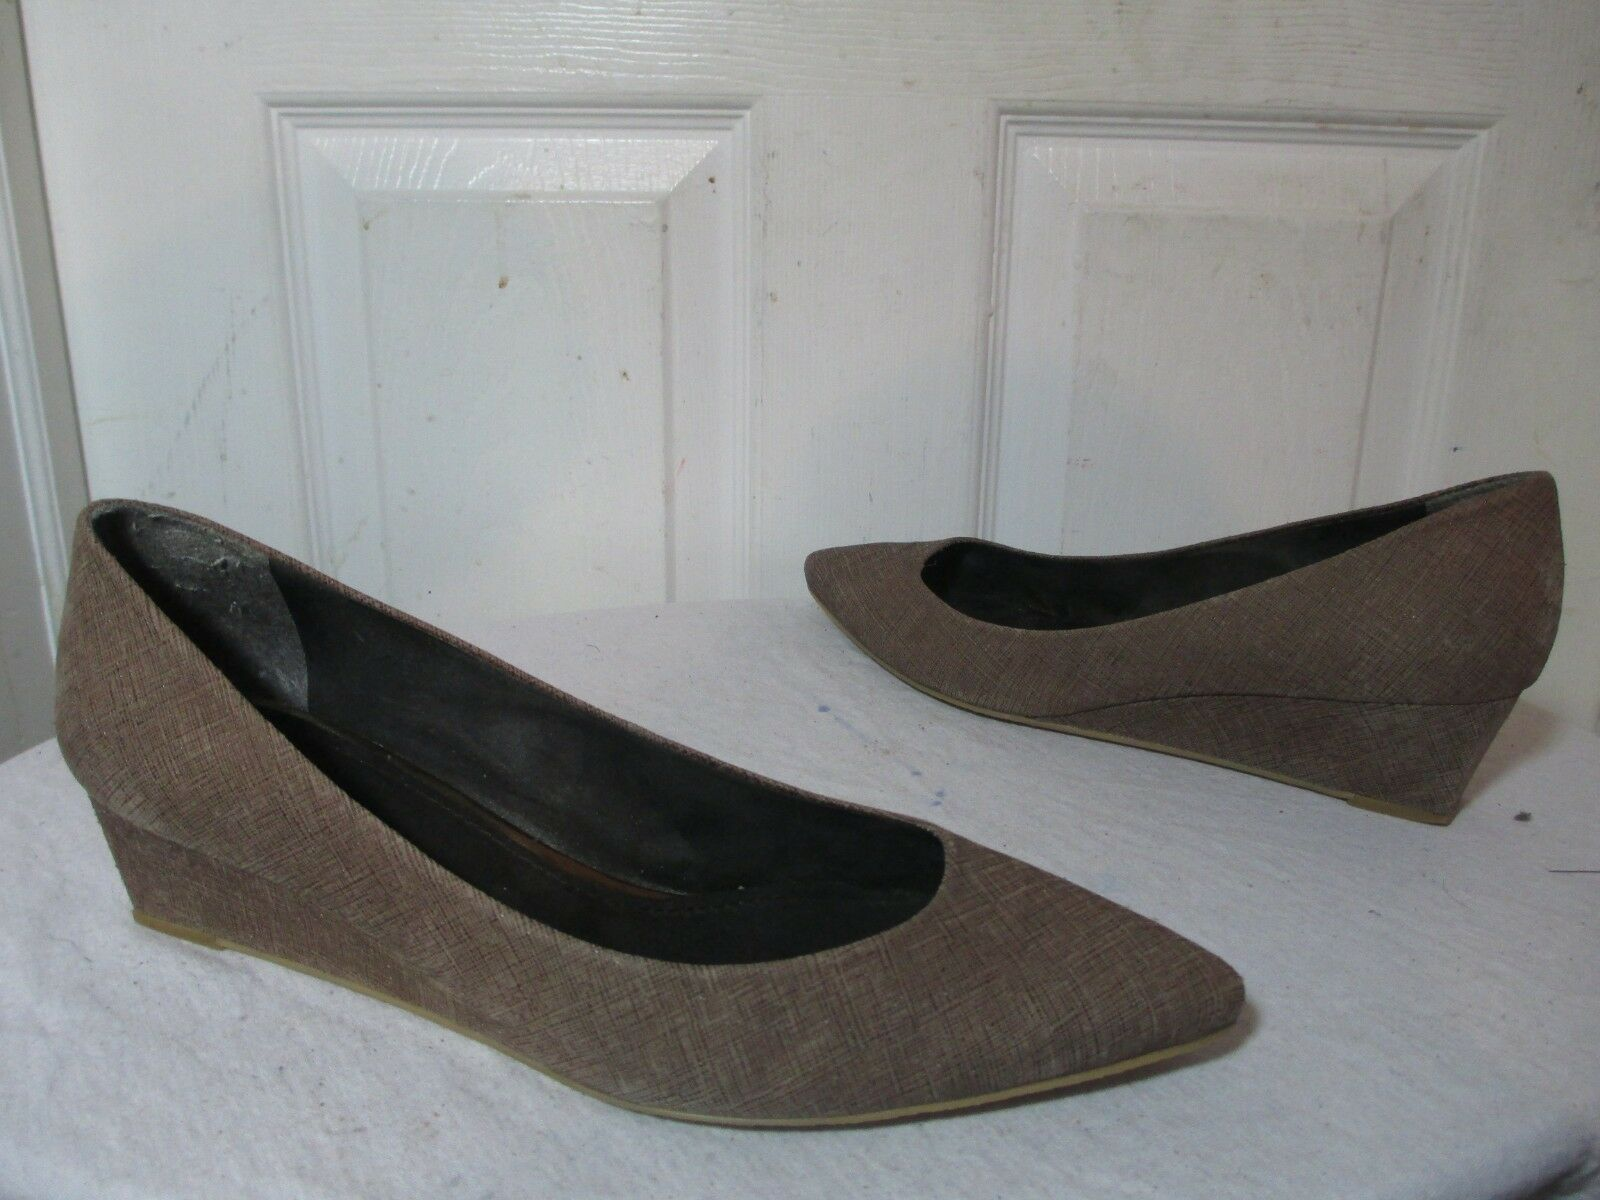 STUART WEITZMAN BROWN TEXTURE LEATHER POINTY WEDGE HEELS PUMPS 11 M  398    Size